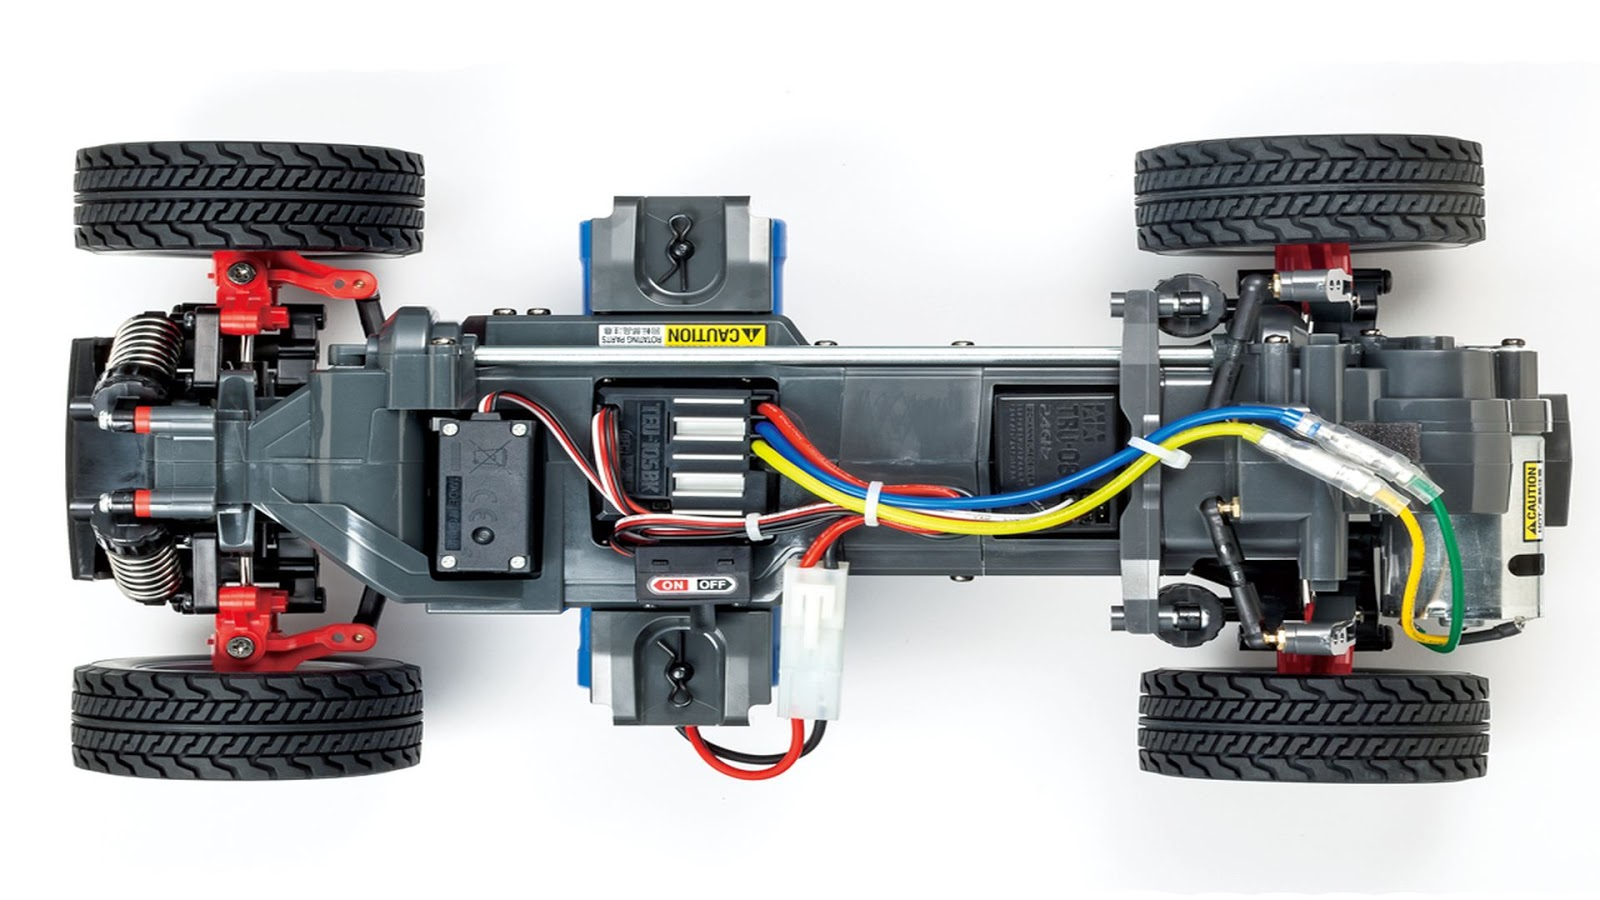 Rc Jeep Adventures Ready 4 Pole To 5 Trailer Wiring Adapter Tow 20036 In July 2005 Tamiya Further Updated The Trf415ms By Releasing Trf415msx They Released Both As A Conversion Kit For Older 415s And Complete